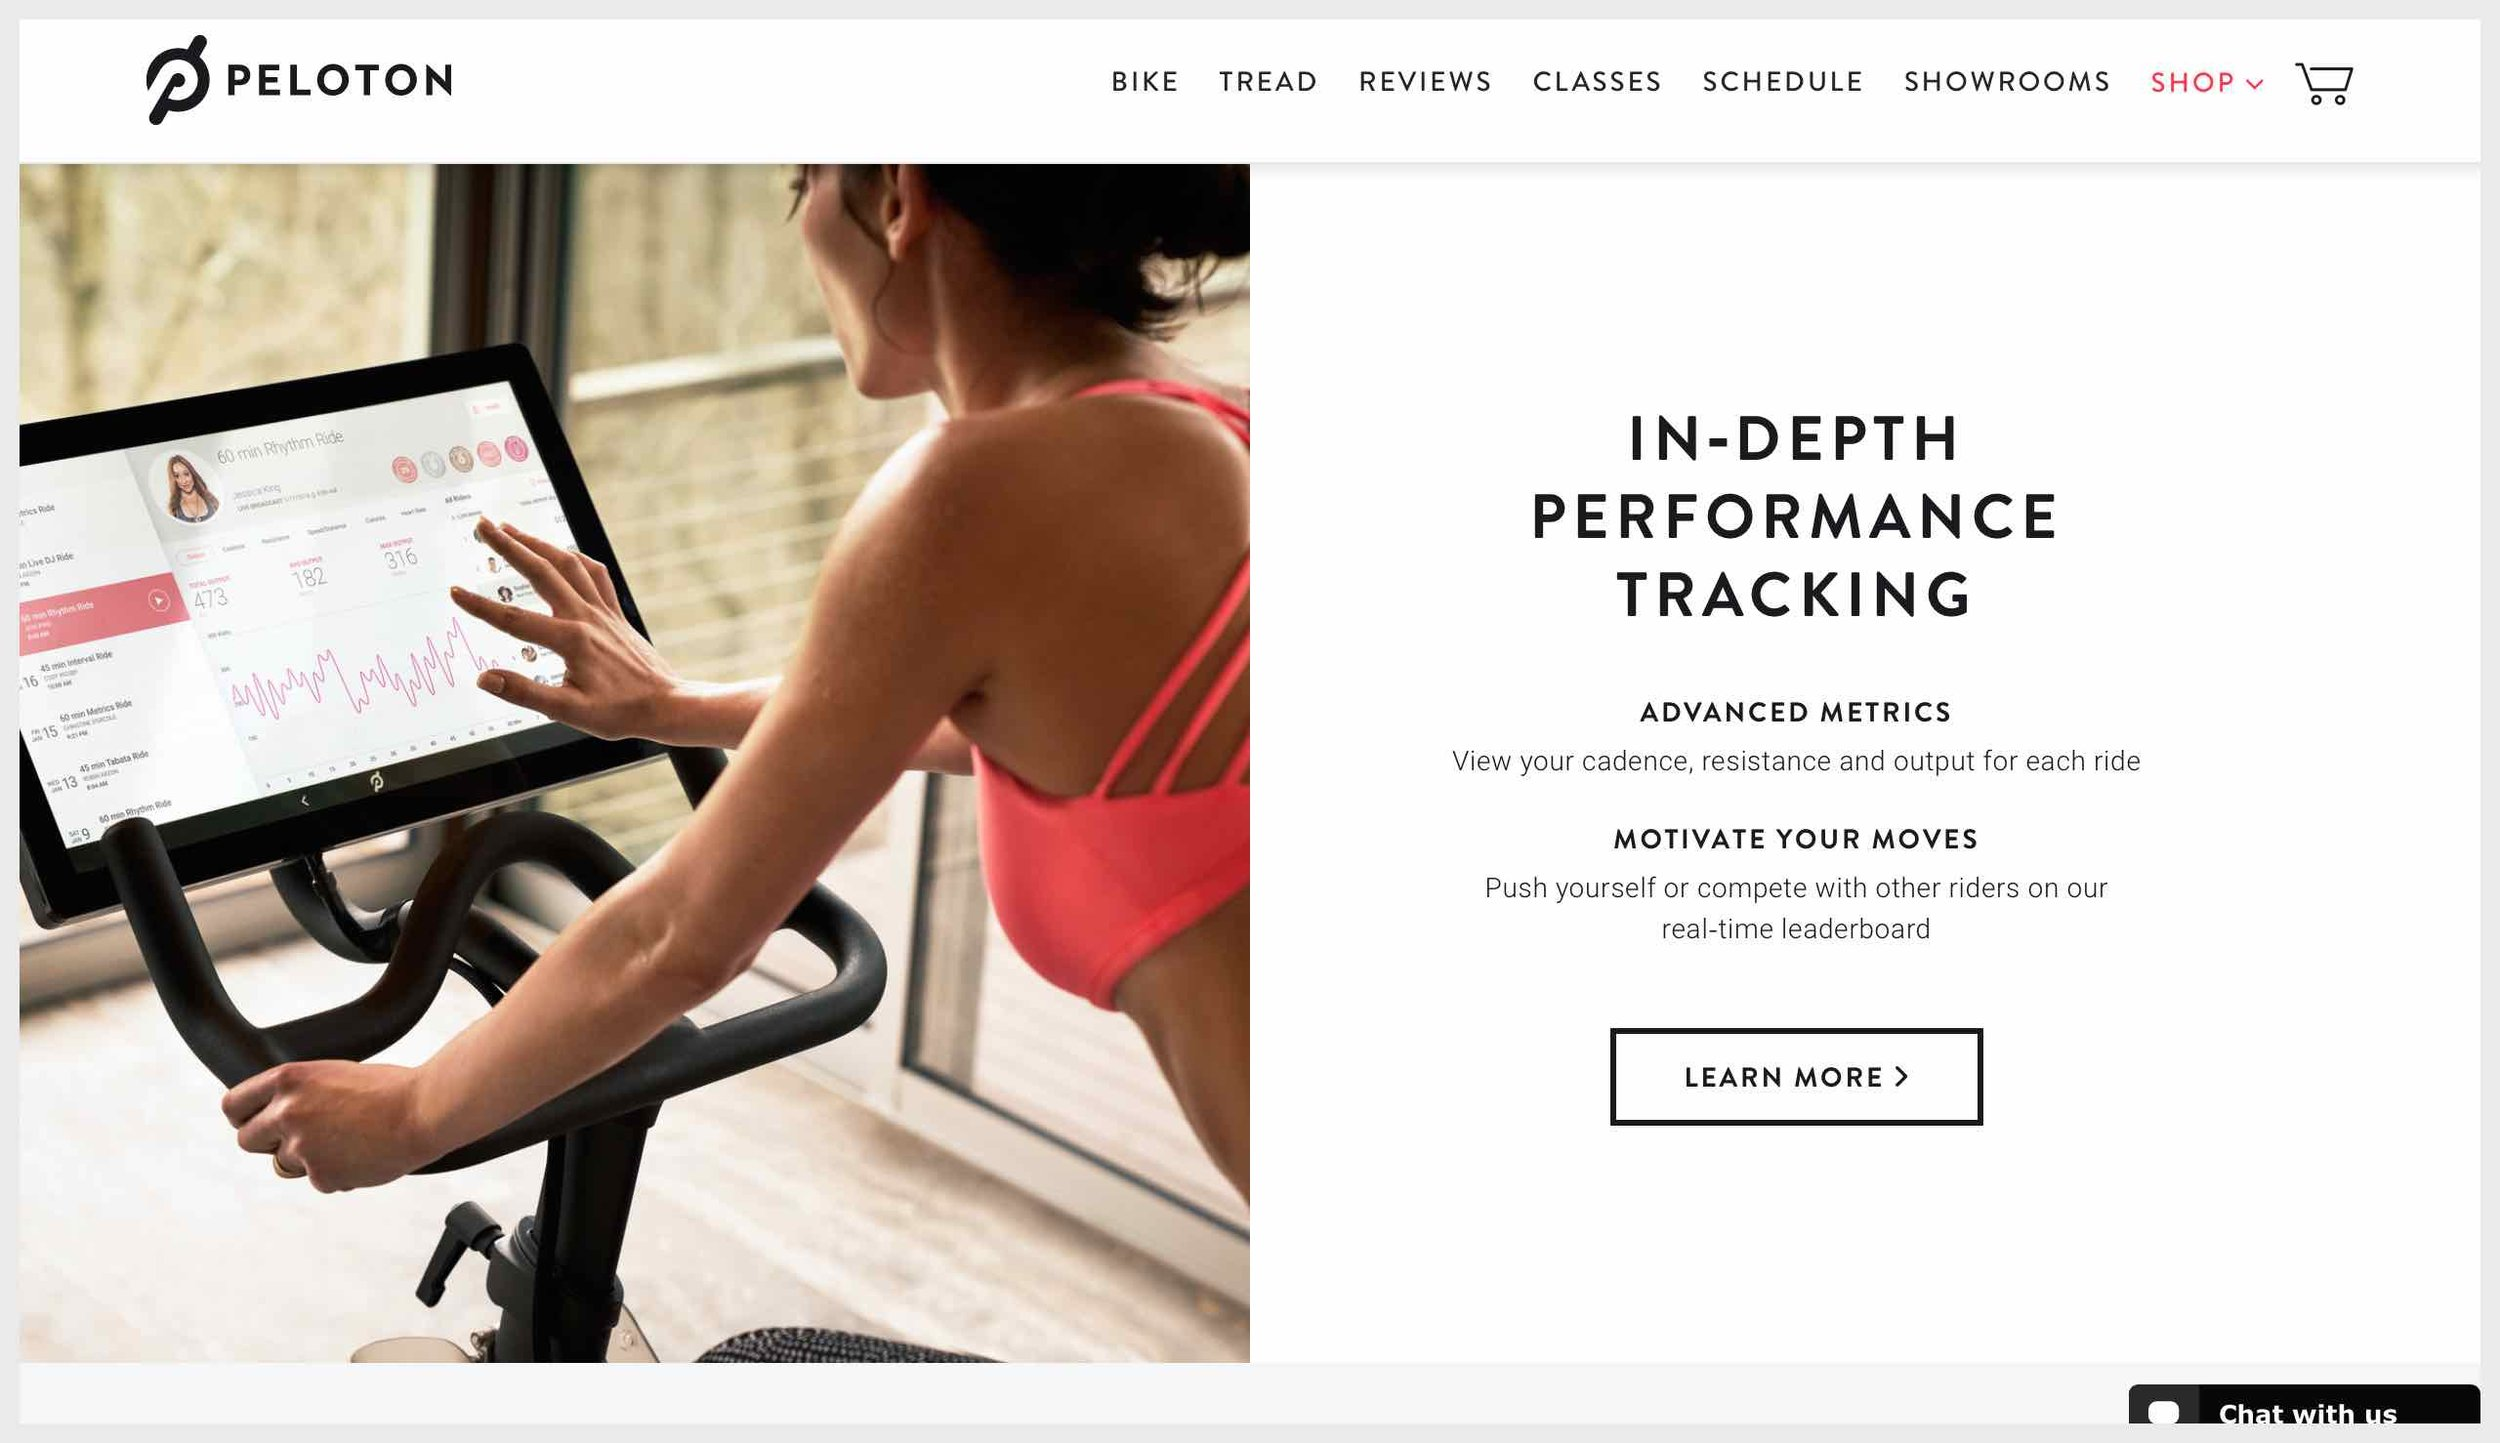 Peloton's homepage with learn more CTAs